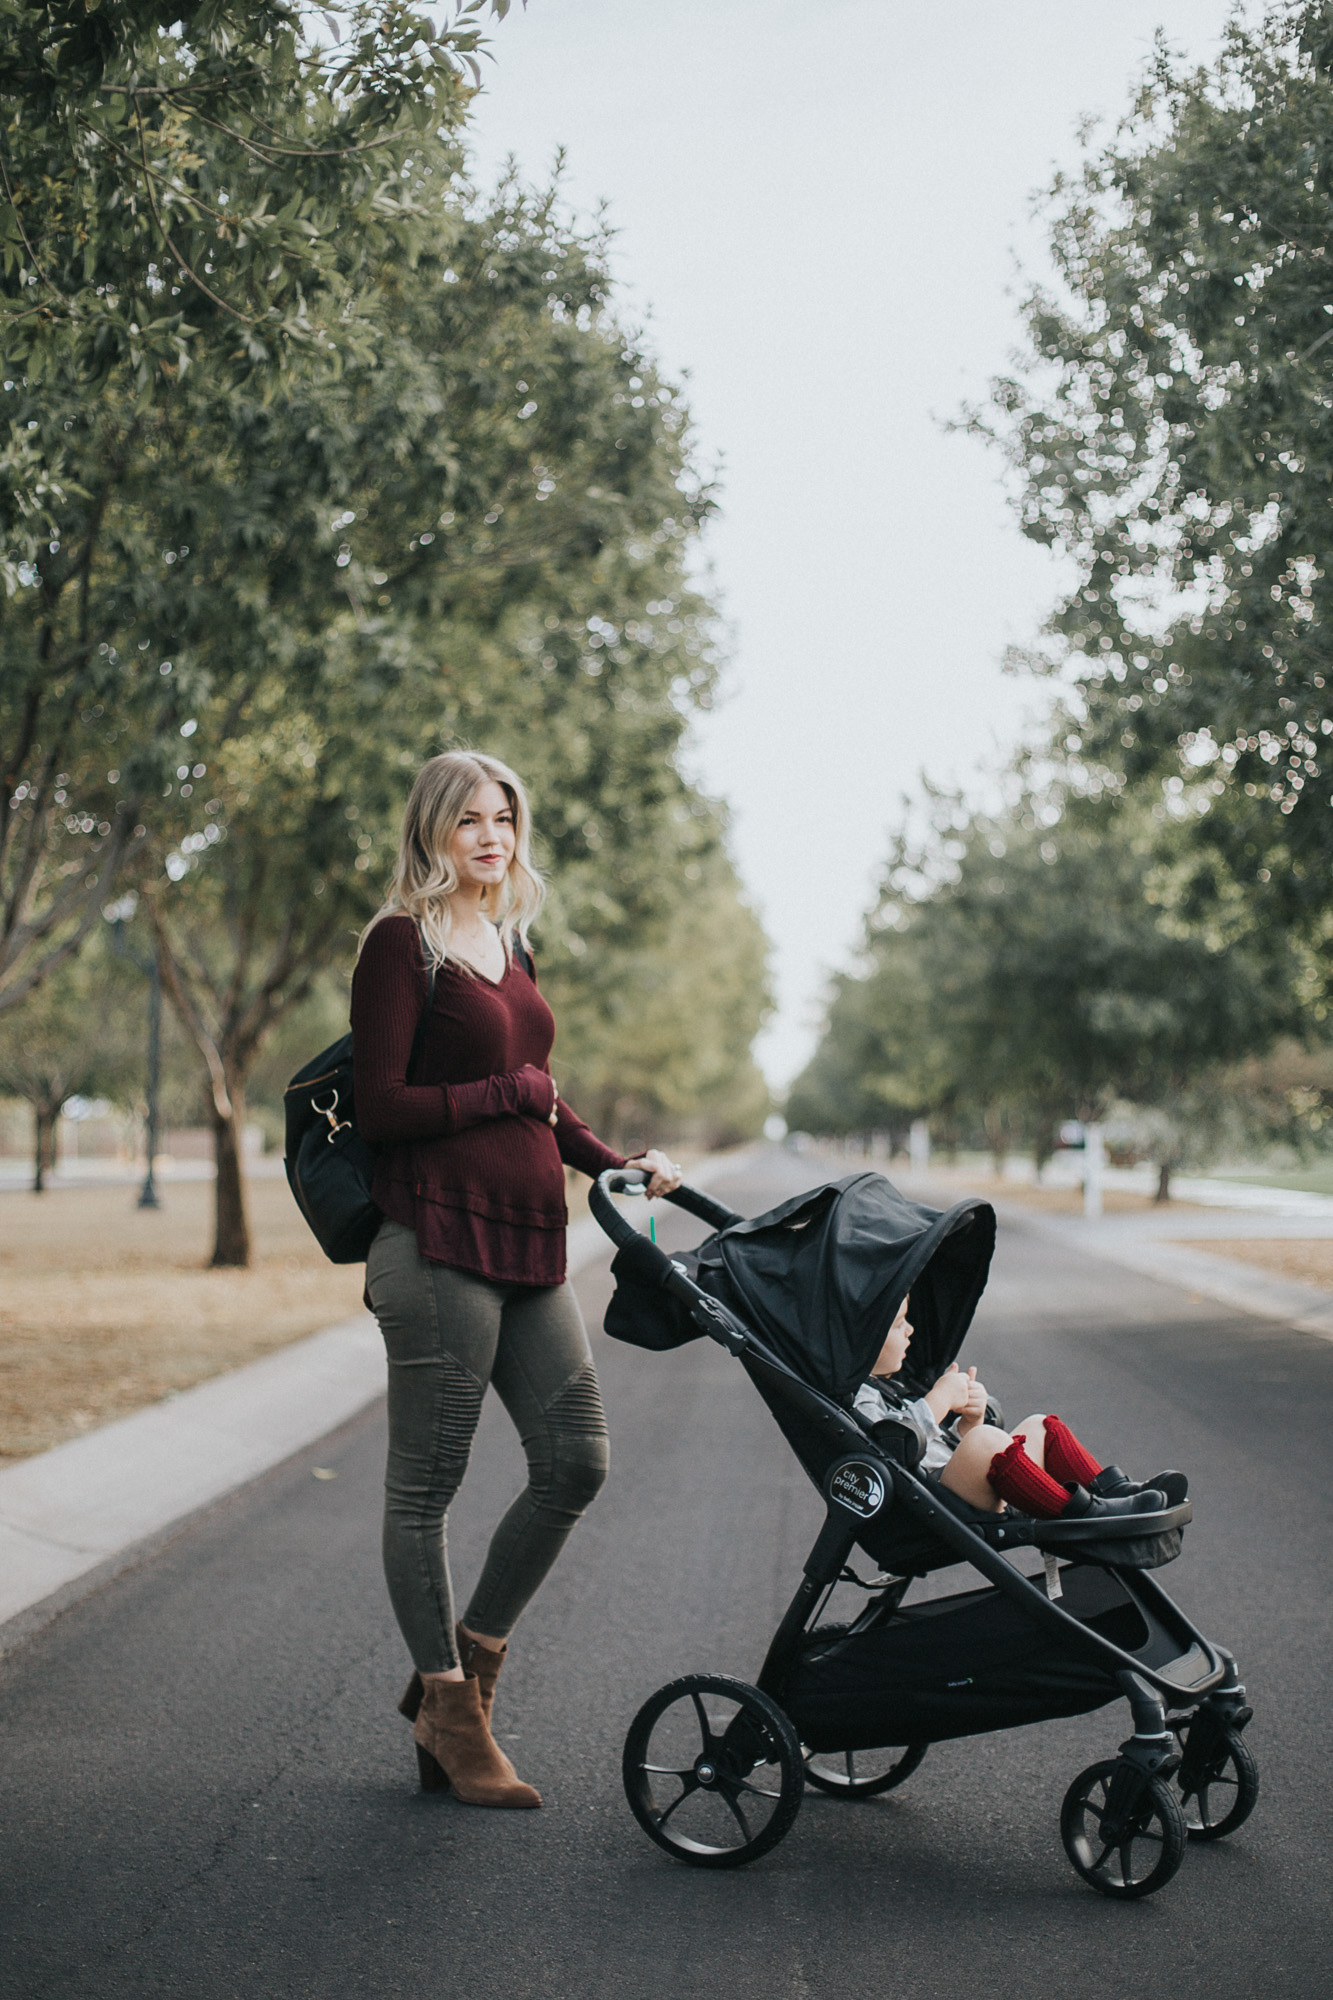 Baby Jogger City Premier Stroller Review From A Pregnant Mom